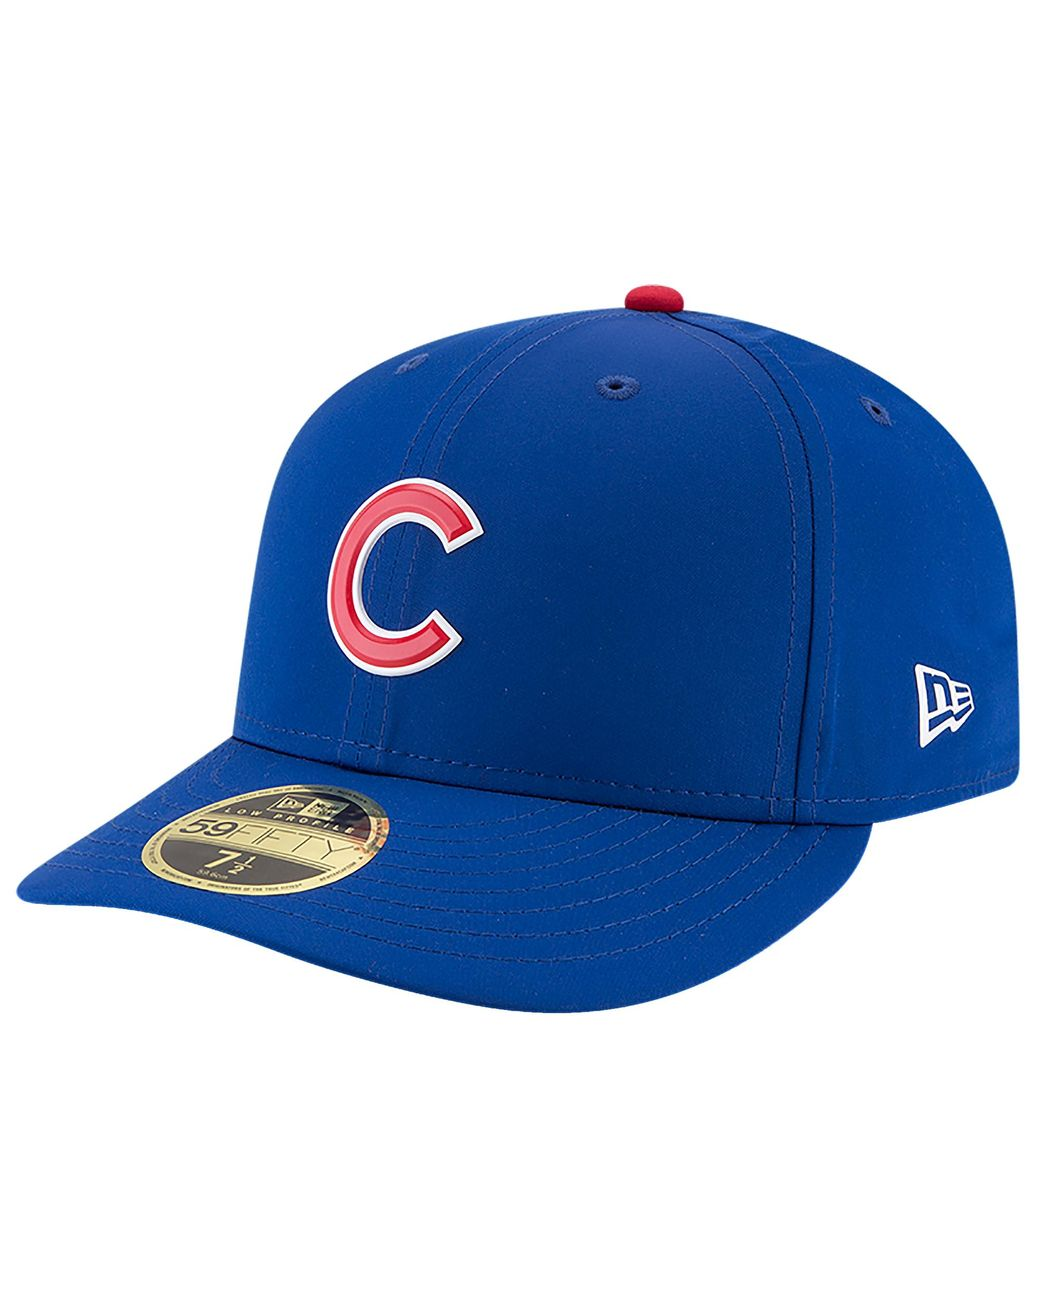 buy popular e2f8c 0fd51 KTZ Chicago Cubs Mlb 59fifty Ac Batting Practice Lp Cap in Blue for Men -  Lyst